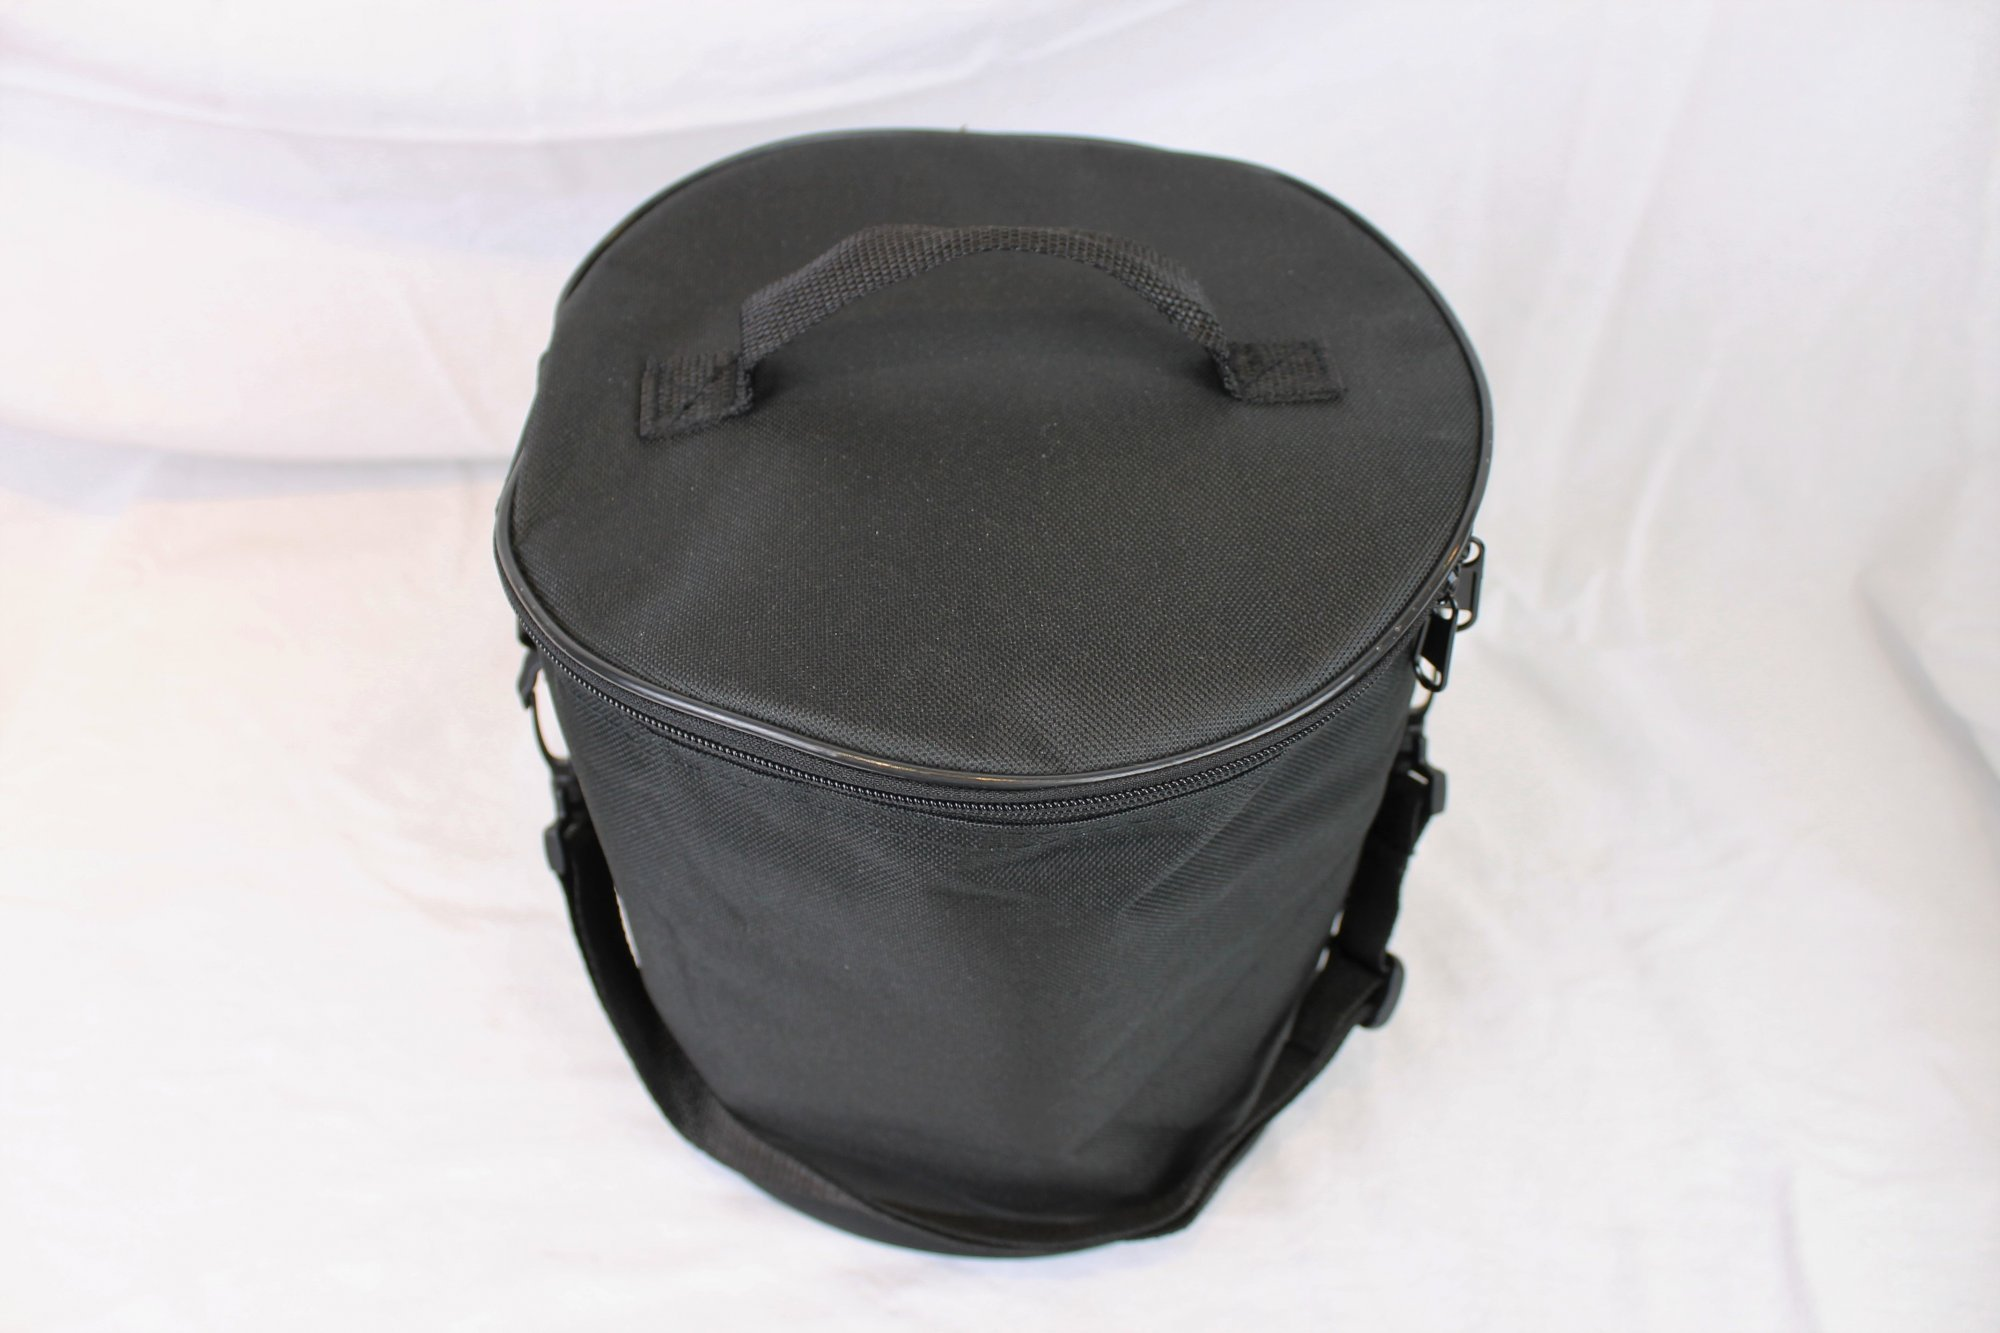 NEW Concertina Connection Black Gig Bag for Concertina 9.5 x 8.5 (24cm x 21.5cm)